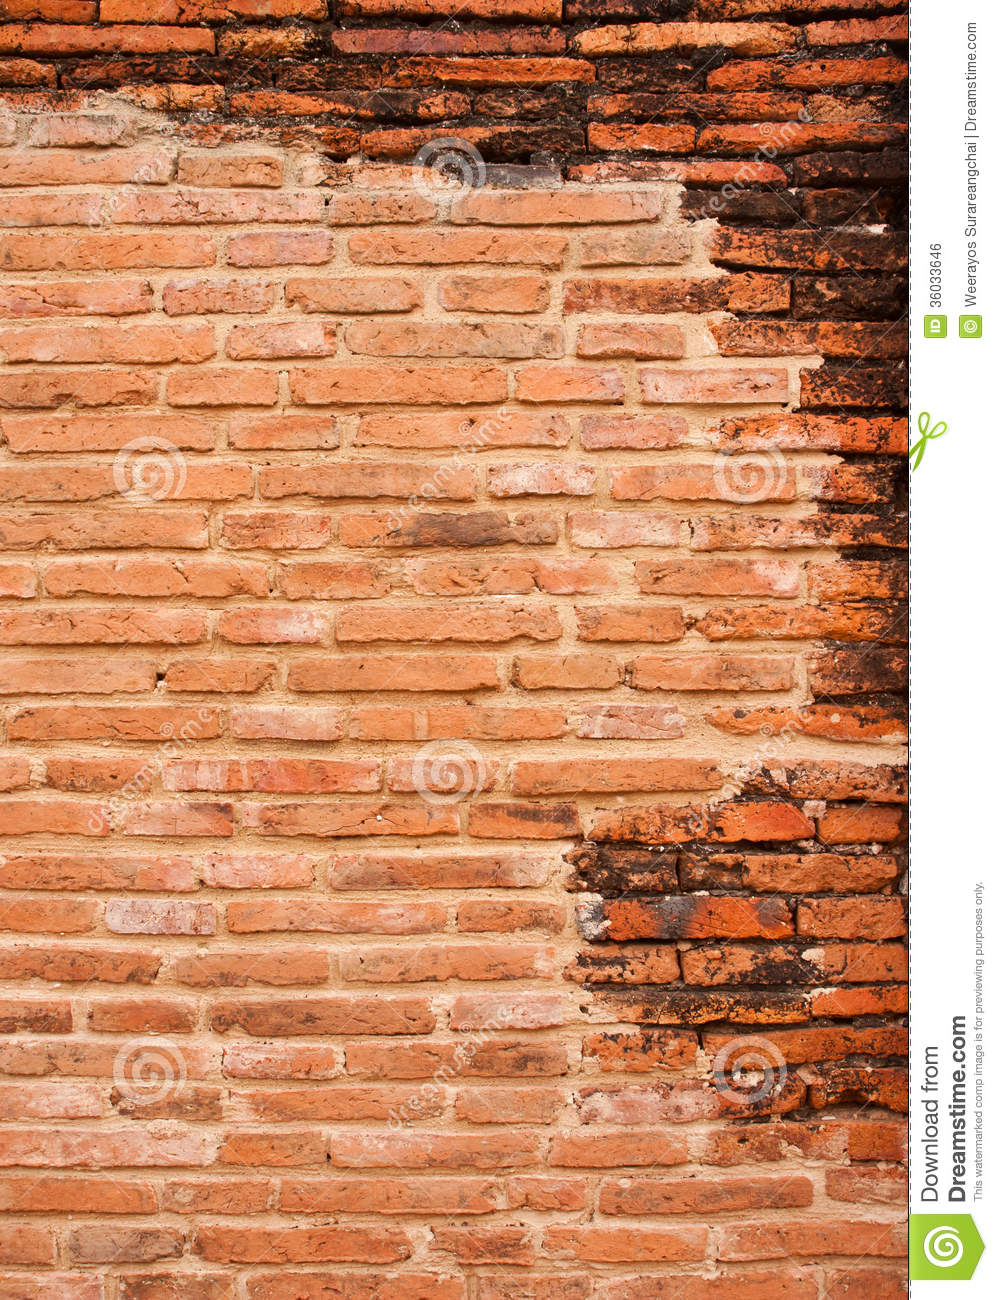 Brick Wall Background Design : Background of old red brick wall pattern texture royalty